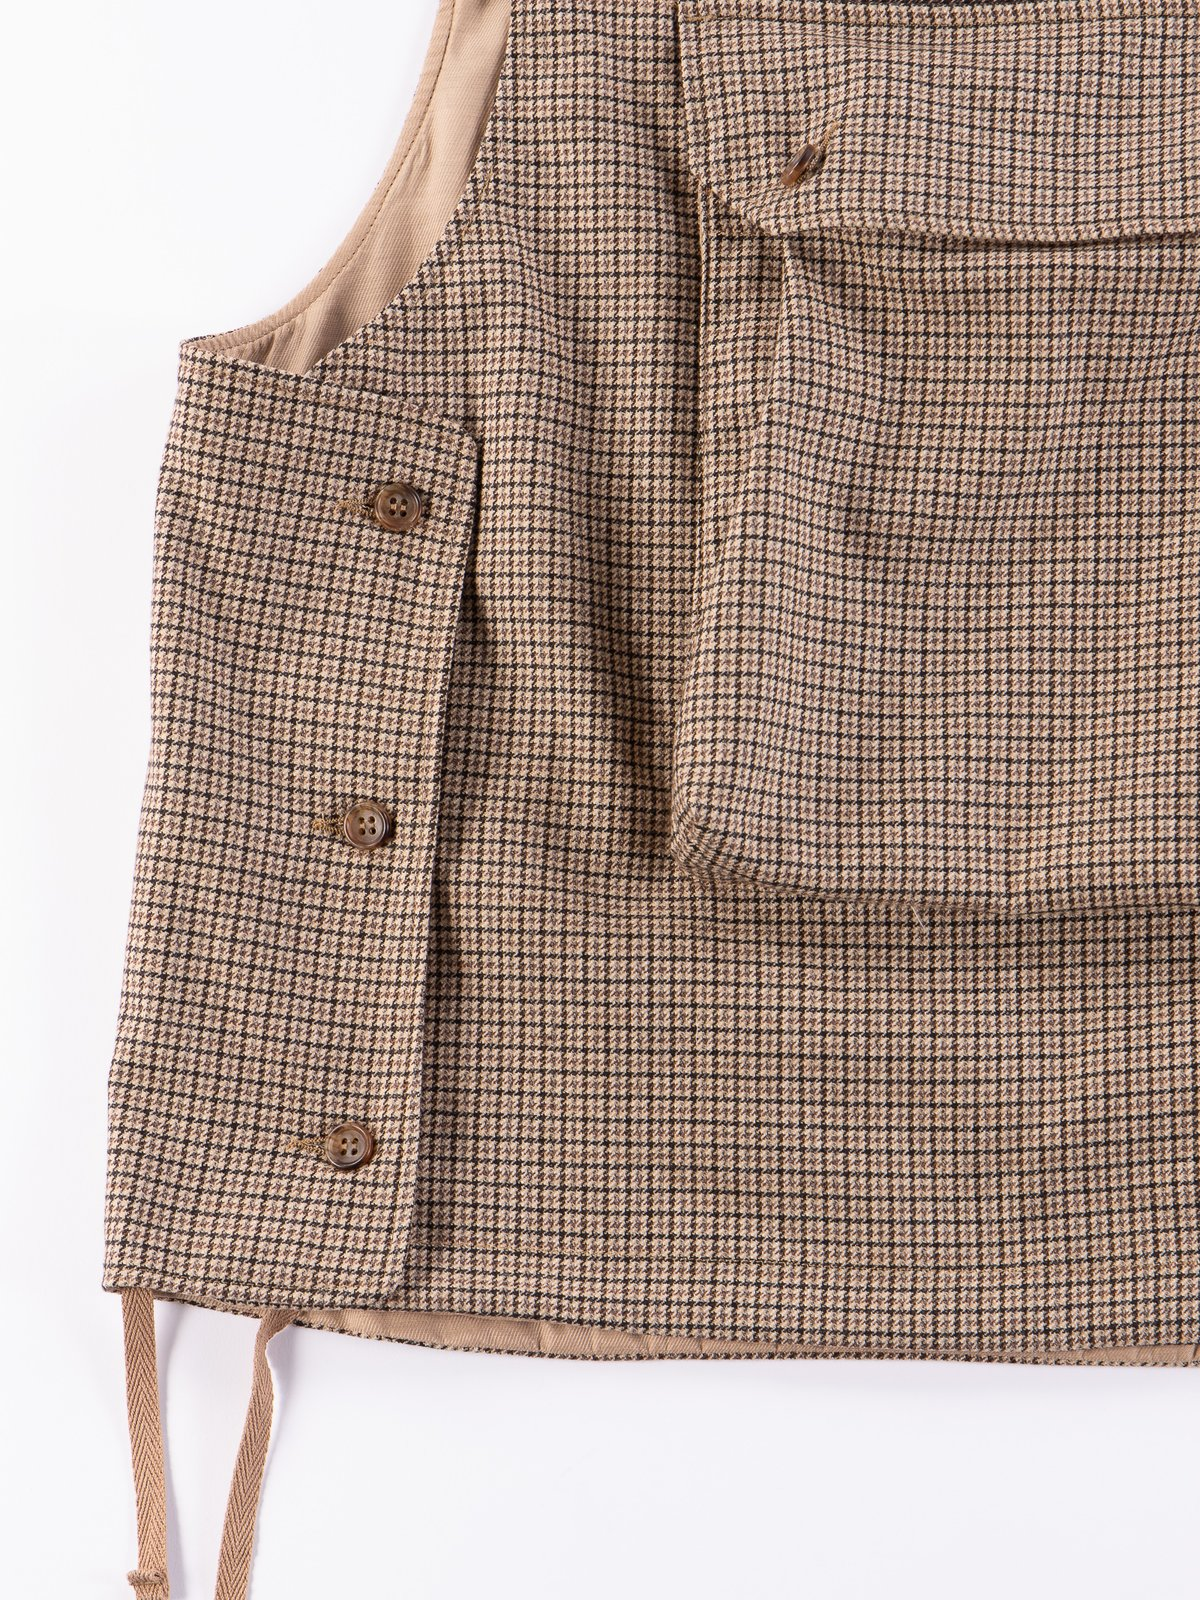 Brown Wool Poly Gunclub Check Cover Vest - Image 4